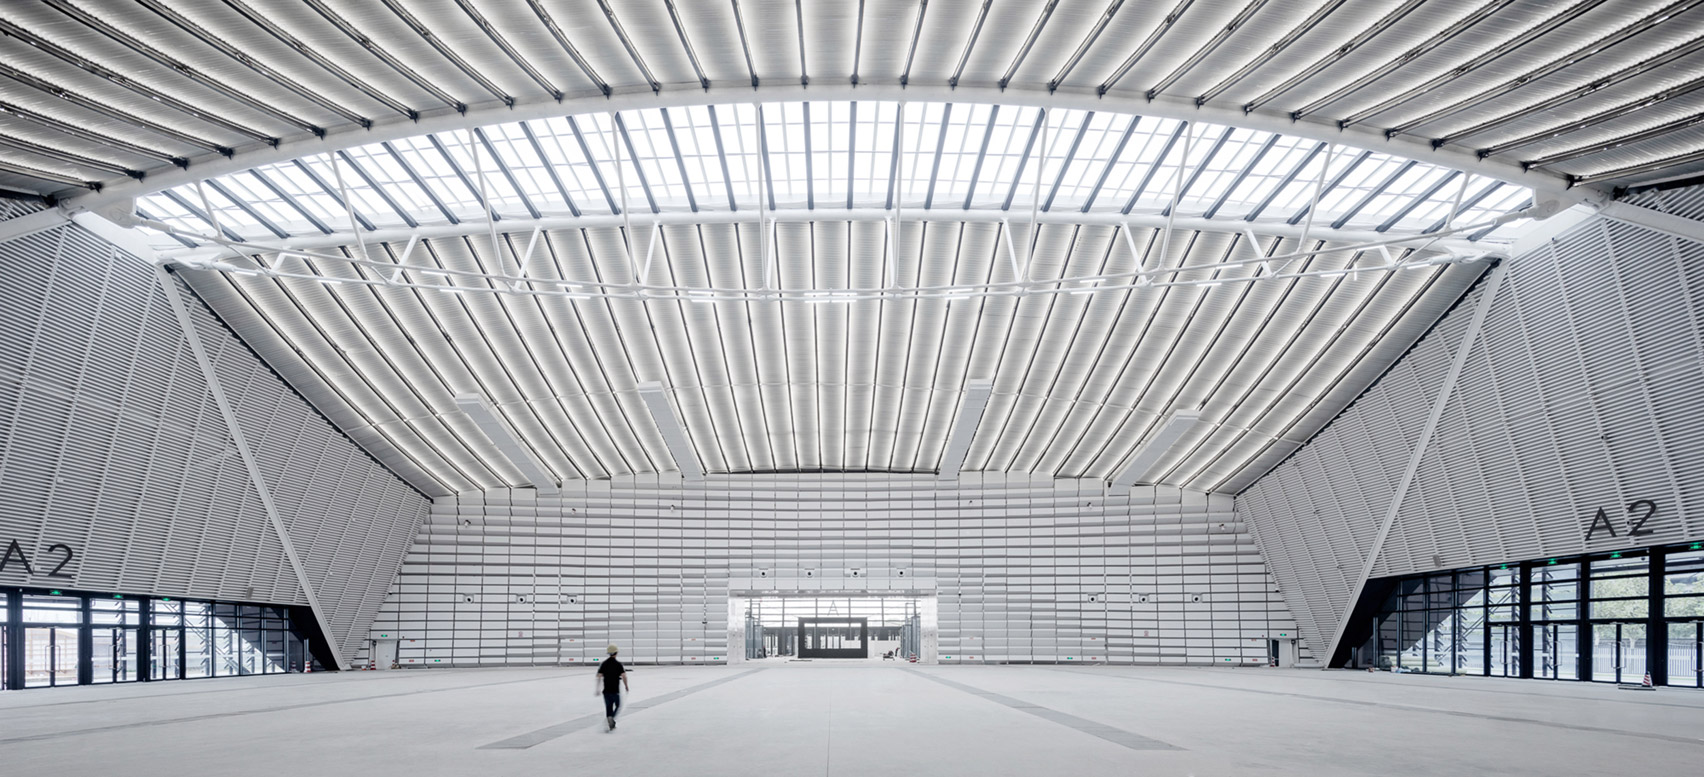 Light of Internet World Internet Conference Centre by Archi-Union